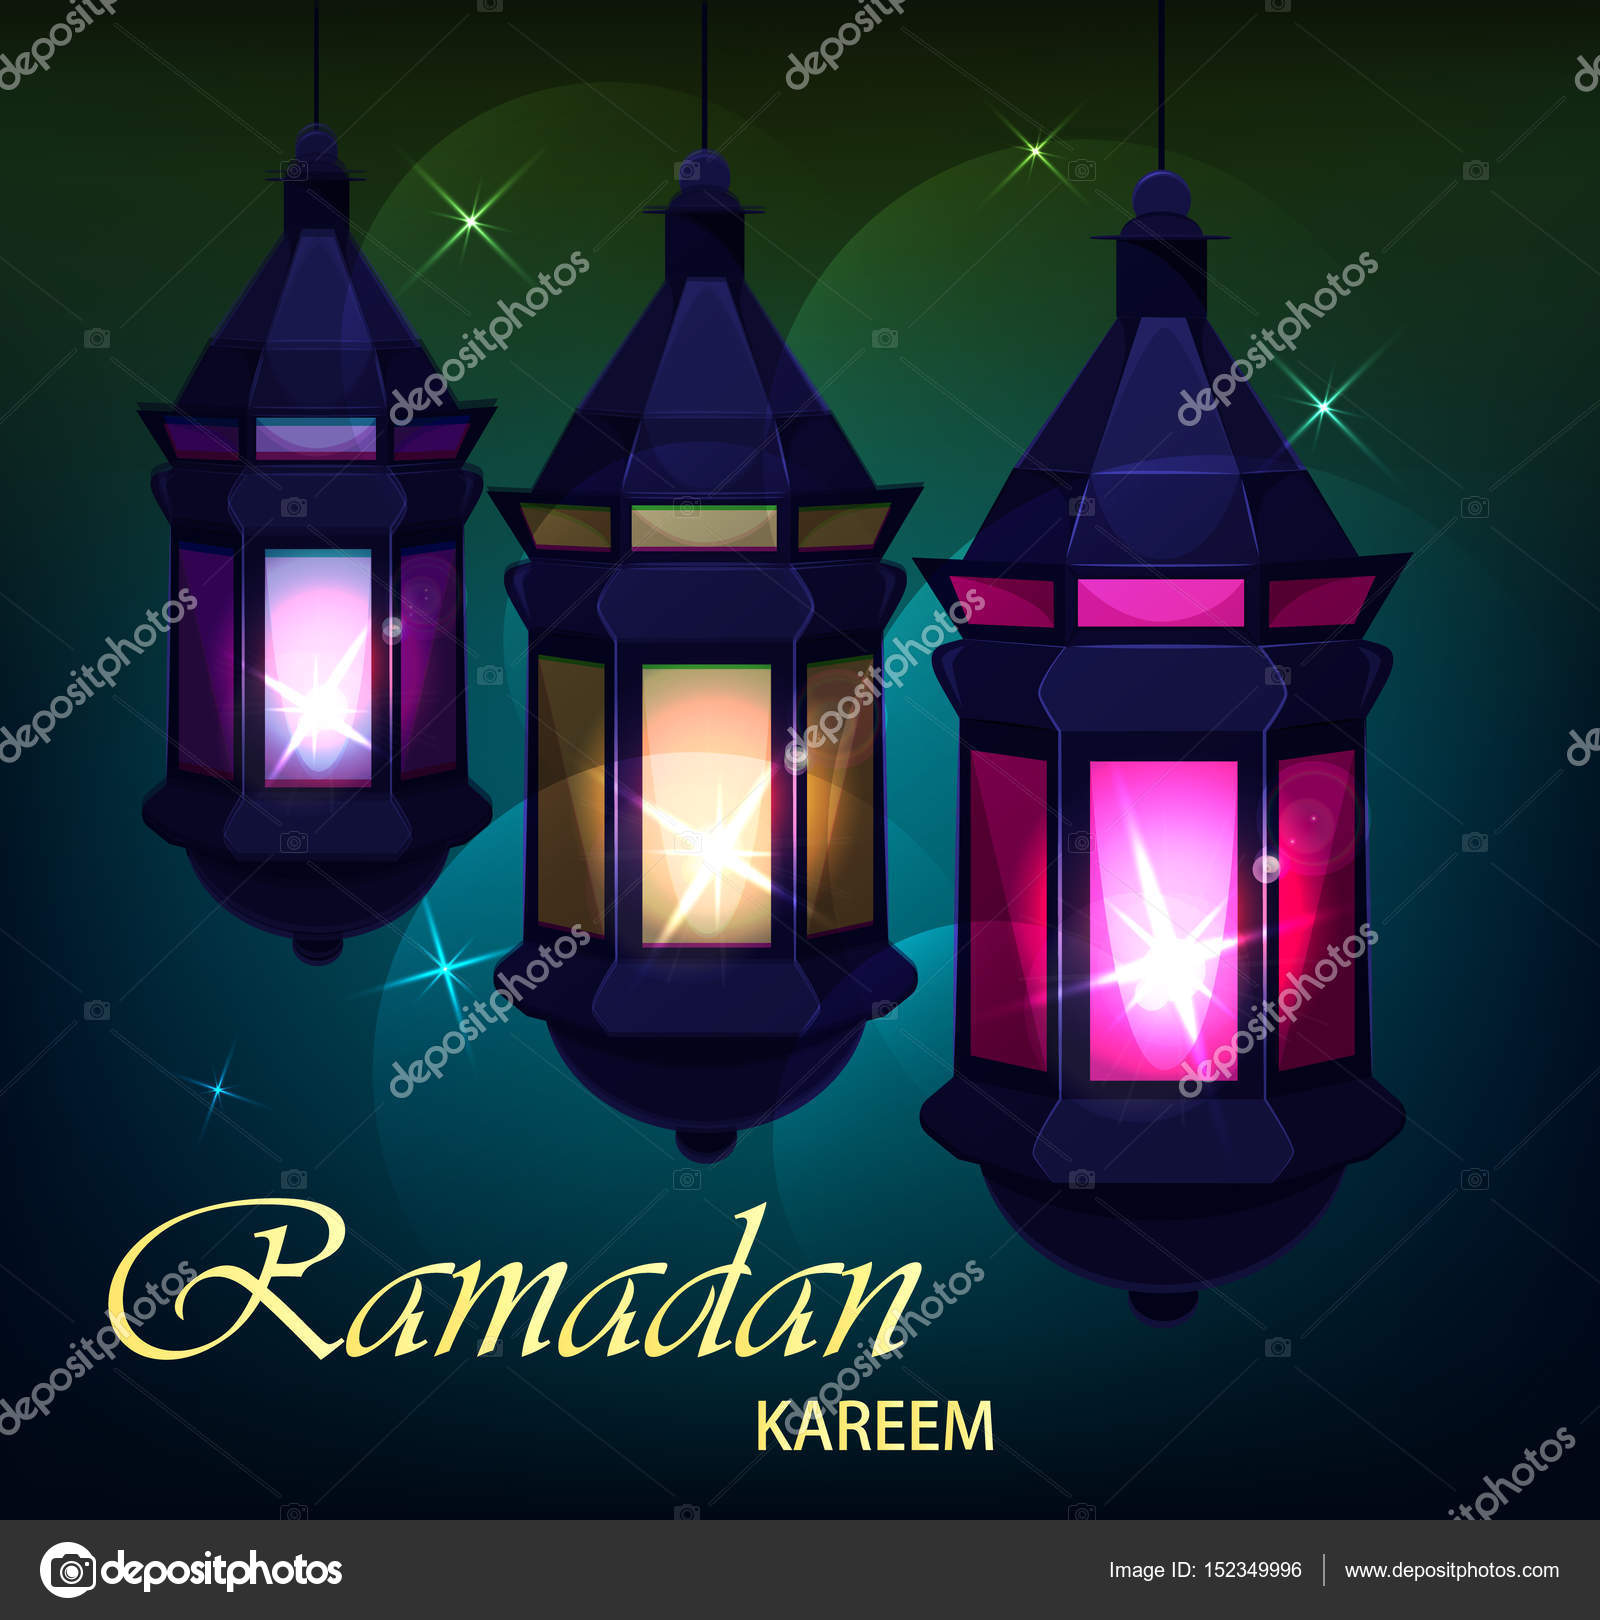 Ramadan kareem beautiful greeting card with traditional arabic ramadan kareem beautiful greeting card with traditional arabic lanterns on colored blurred background usable for m4hsunfo